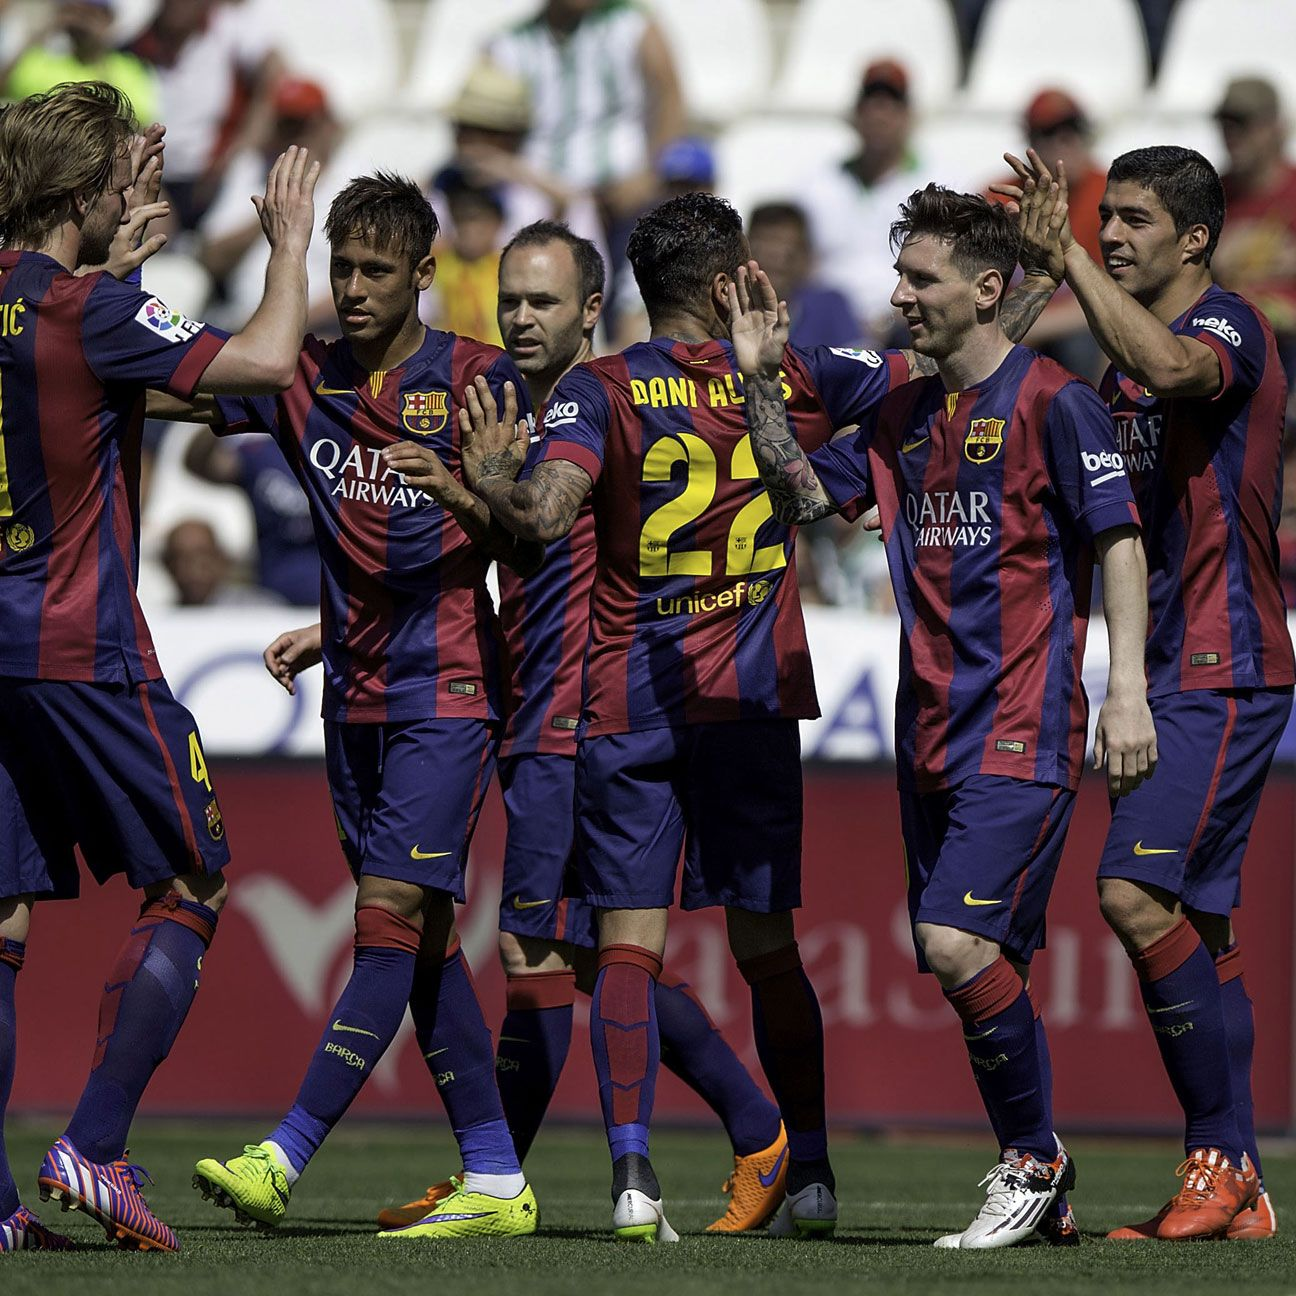 Will Barcelona repeat as La Liga champs? FC Insiders weigh in on that and much more.